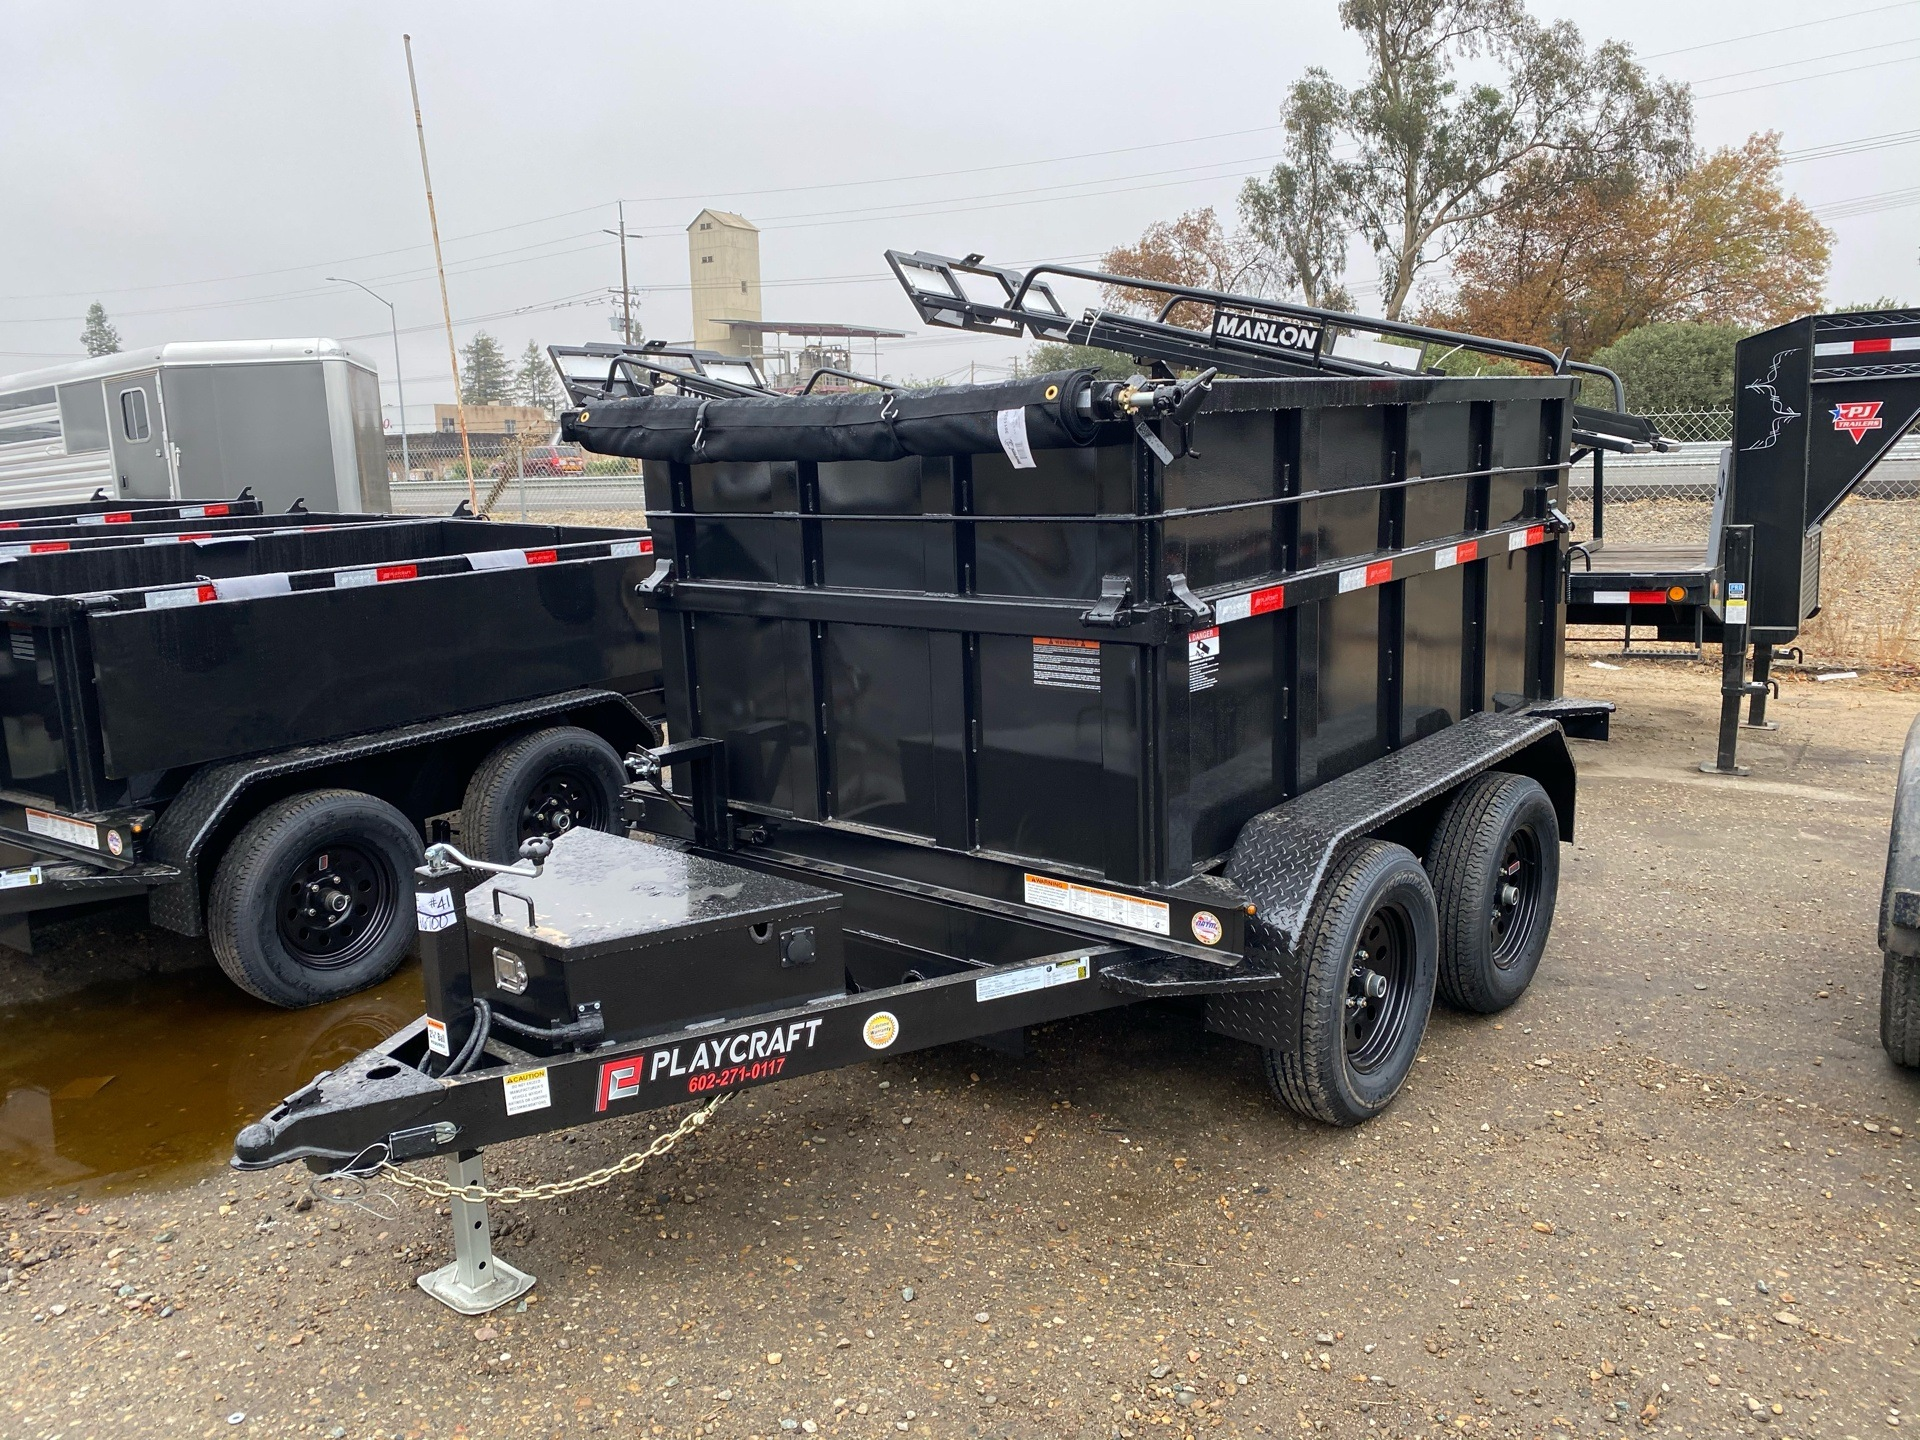 2021 Playcraft Trailers 8' X 5' Dump Trailer w/ Fold Down Sides in Acampo, California - Photo 1